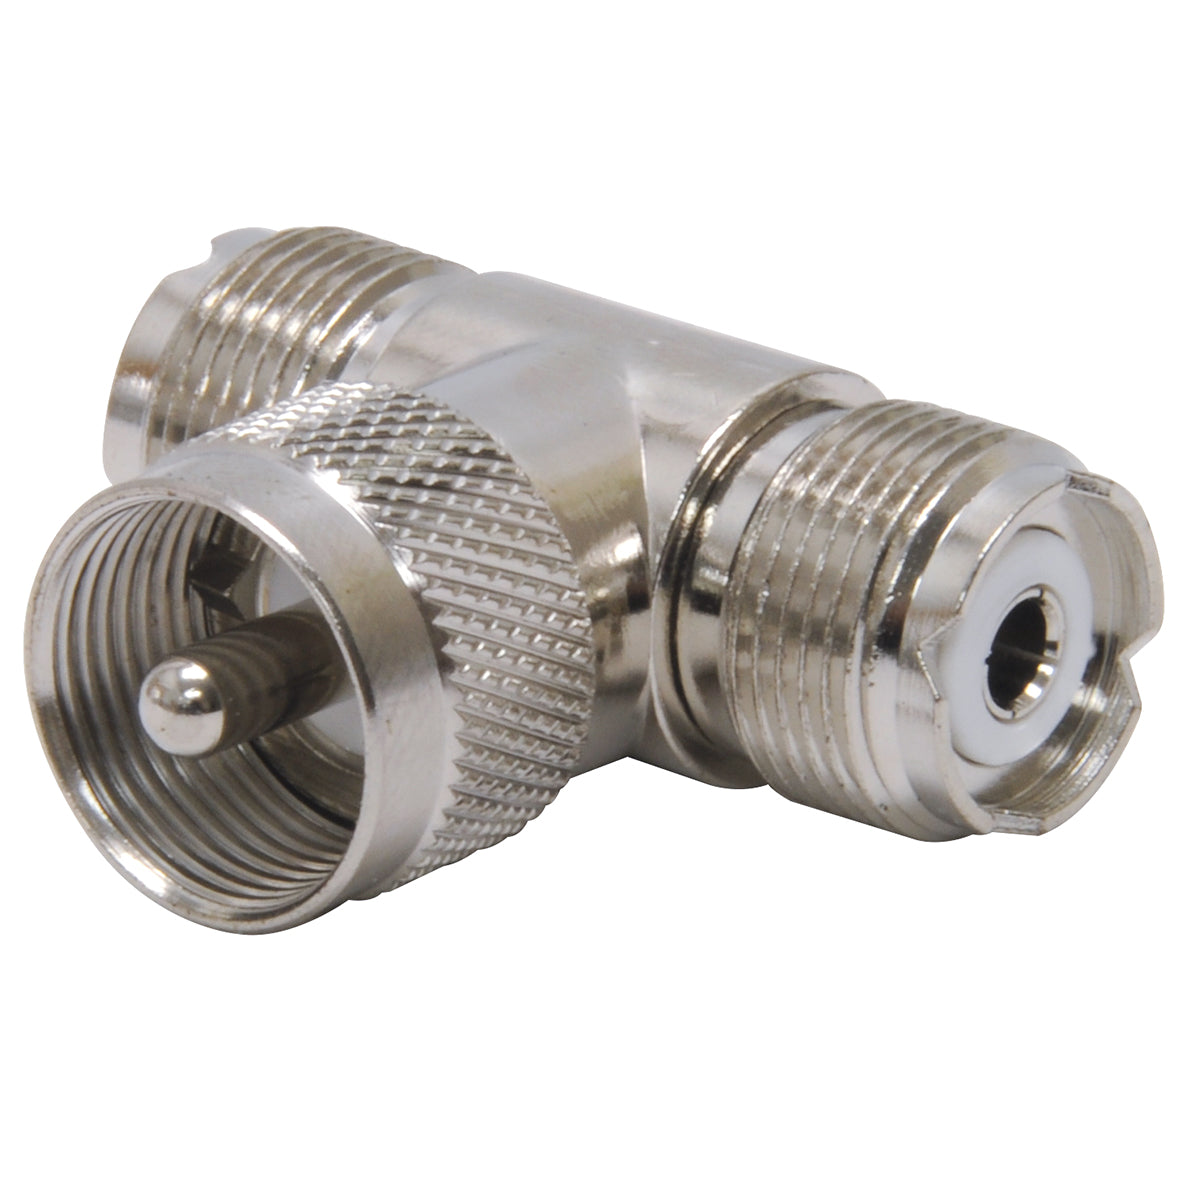 """T"" Coax PL-259 to SO-239 Connector"